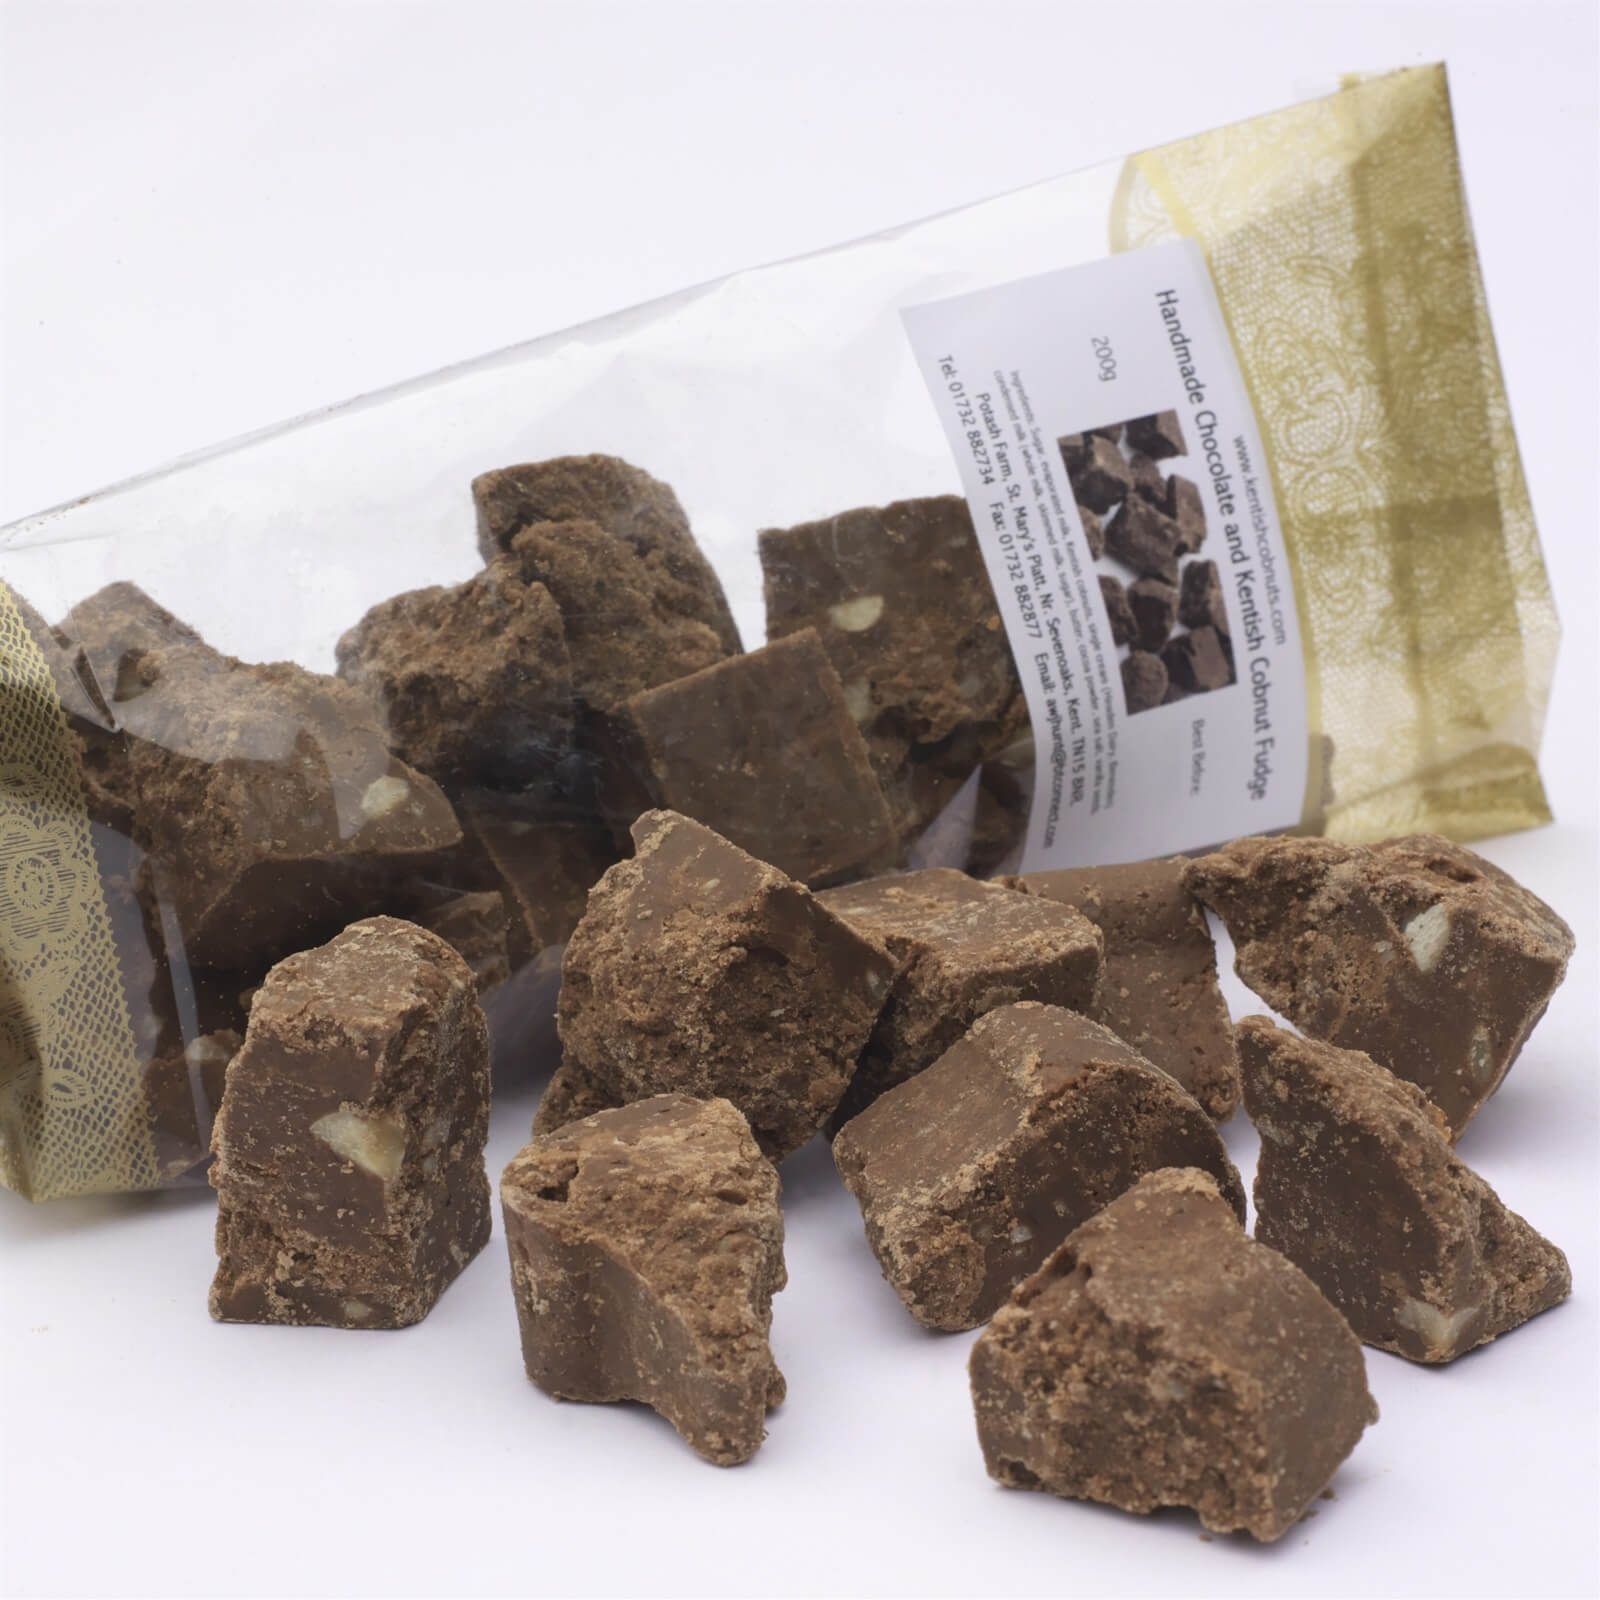 "Gregg Wallace, Daily Mail - ""One of my favourite producers, Potash Farm from my home county, Kent, has produced a deliciously decadent Chocolate and Kentish Cobnut Fudge. Not too sugary, the little crunchy pieces of nut with the soft fudge is a lovely combination of textures and flavours"""